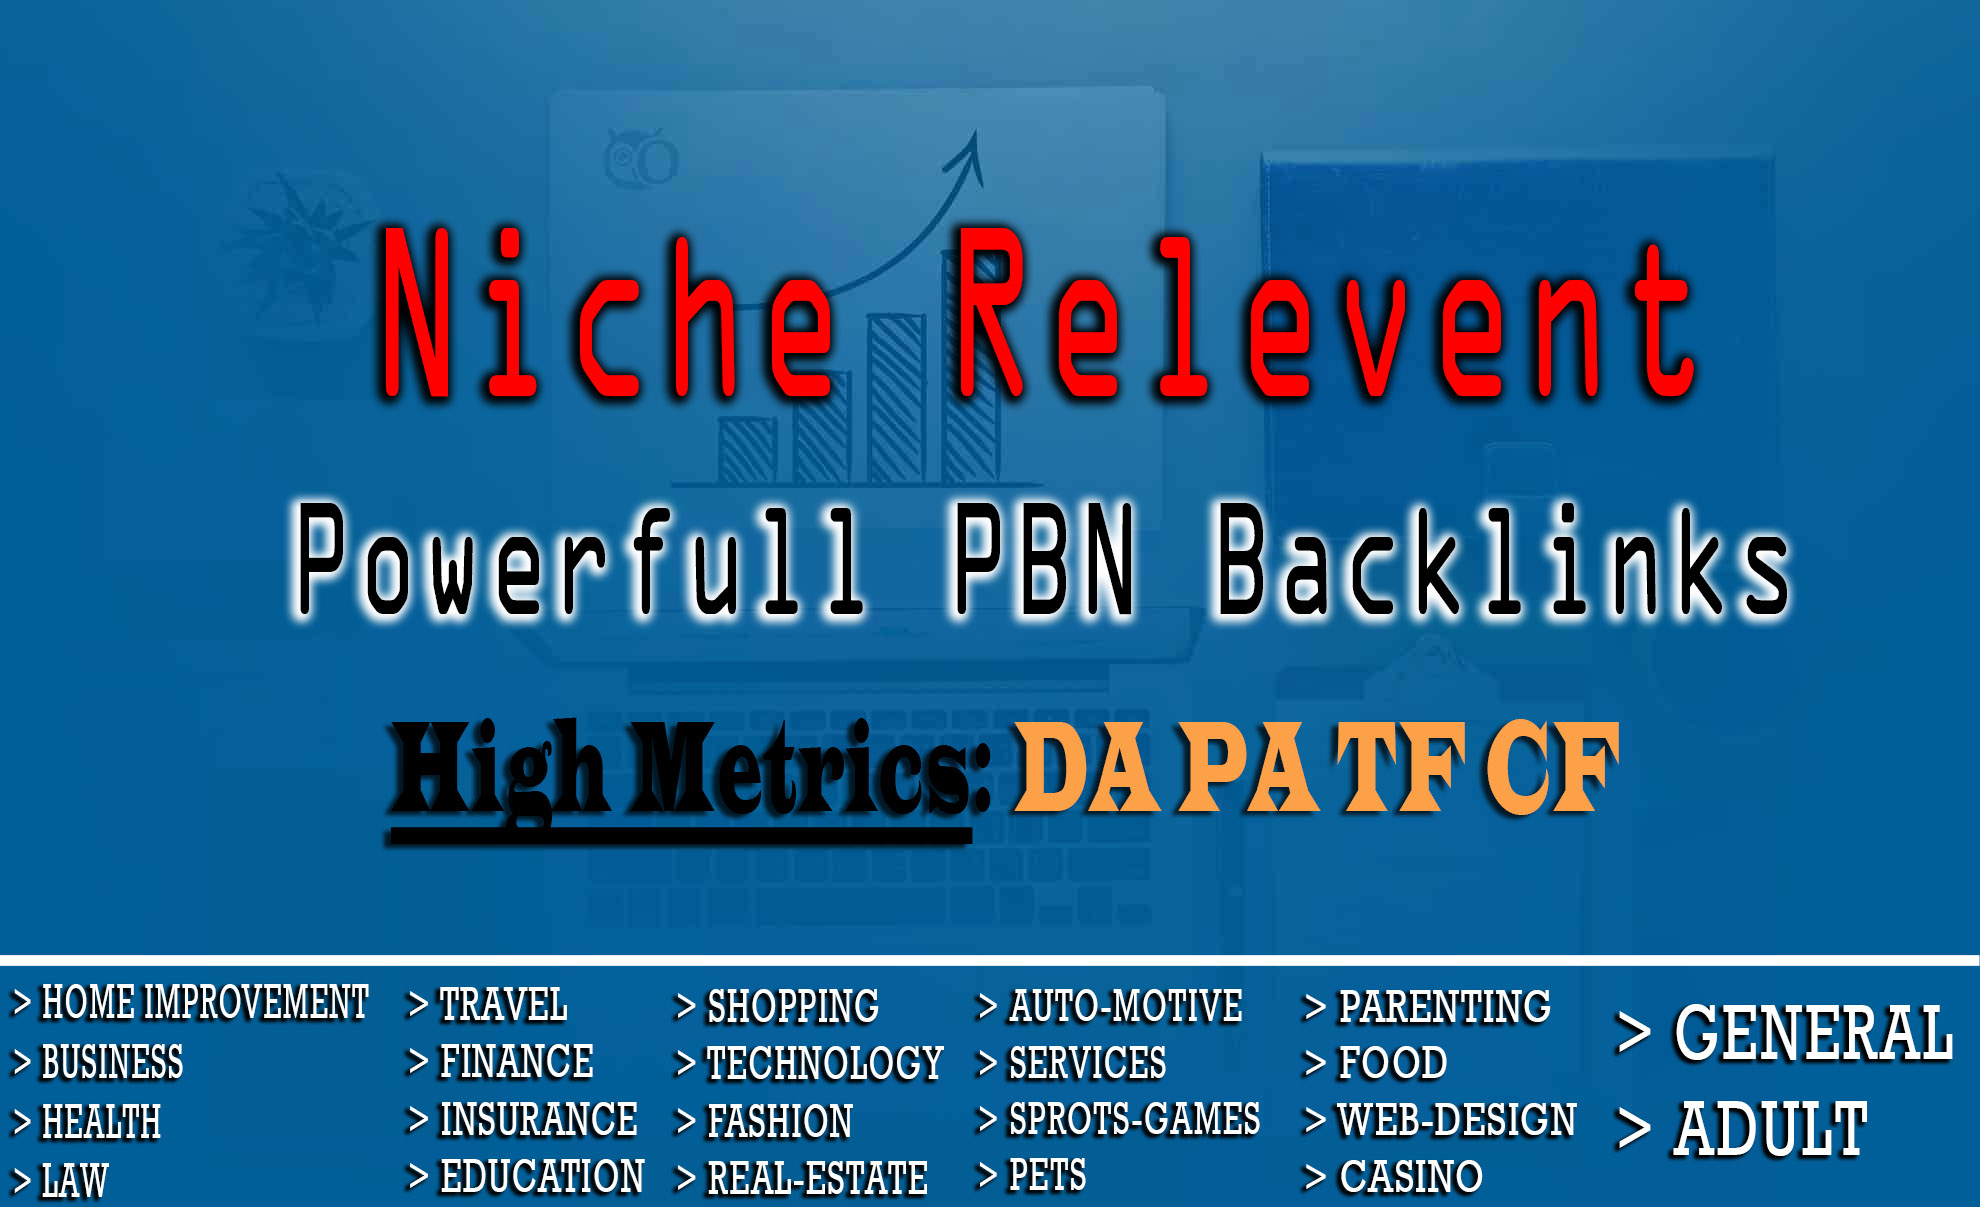 I will Provide Niche Relevant PBN Backlinks with High Metric